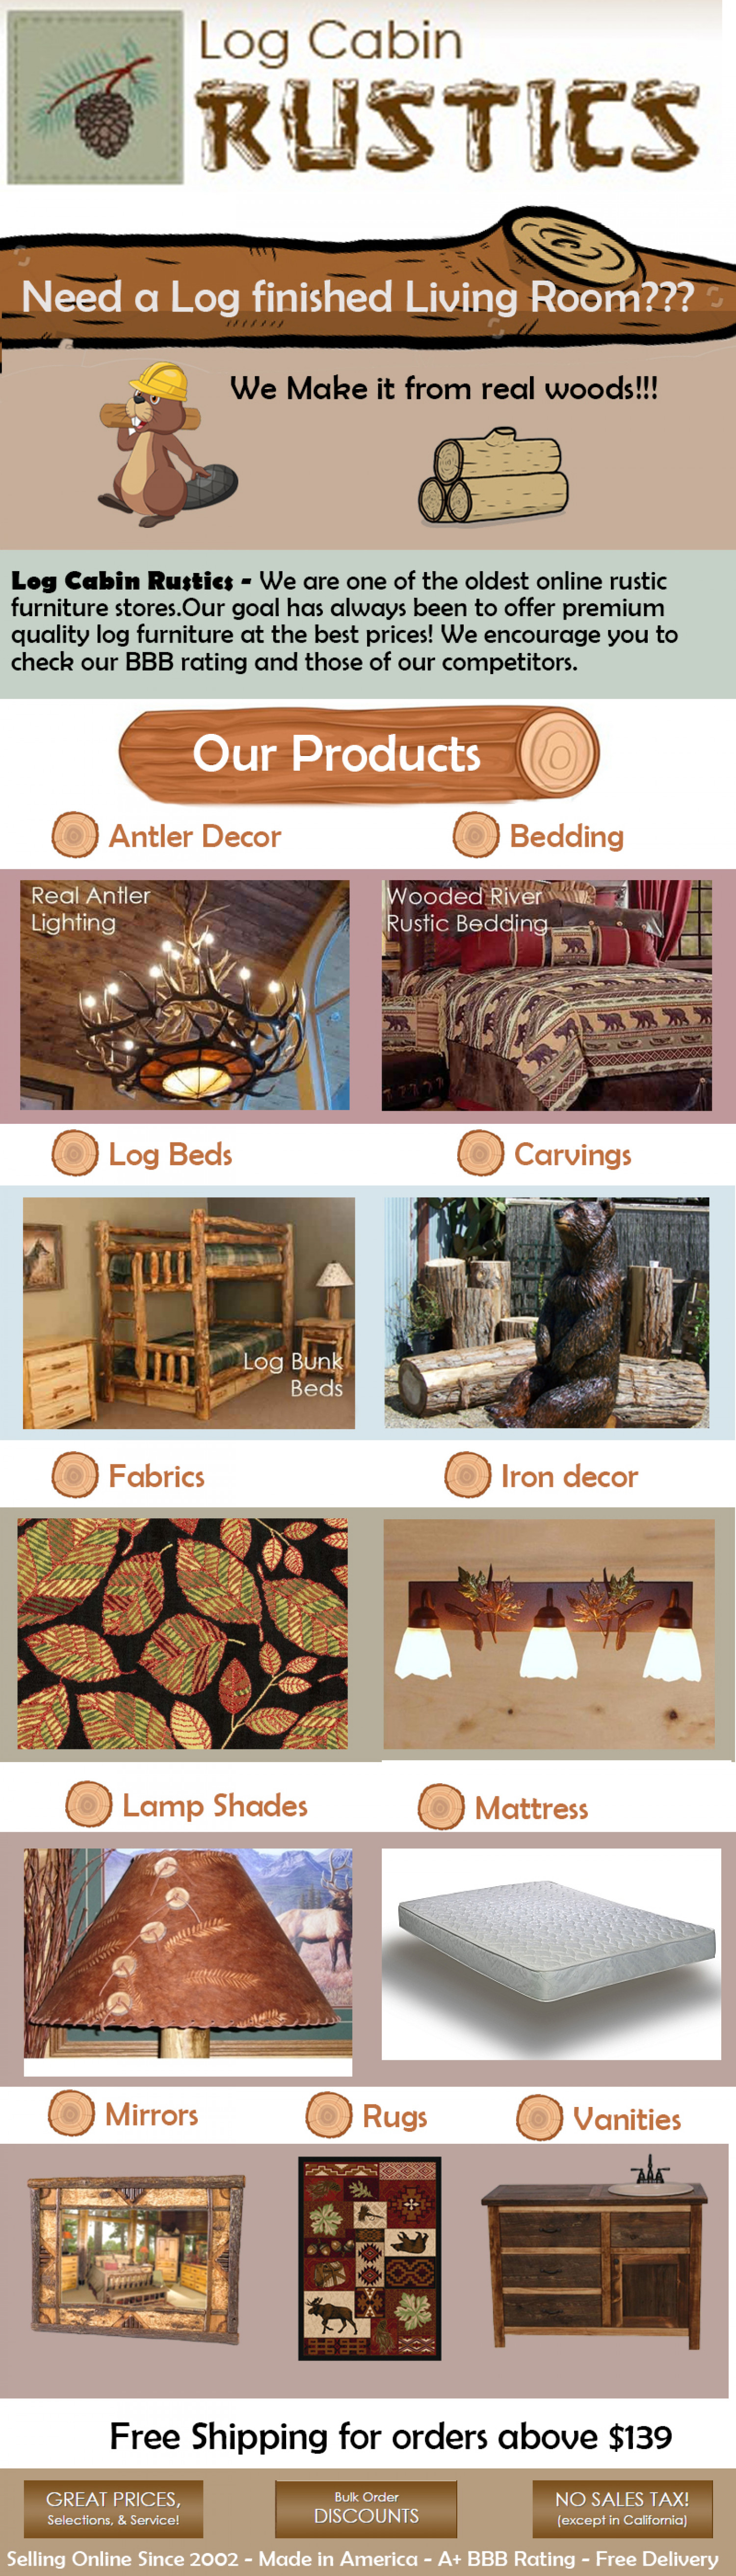 Log Cabin Rustics Infographic Infographic